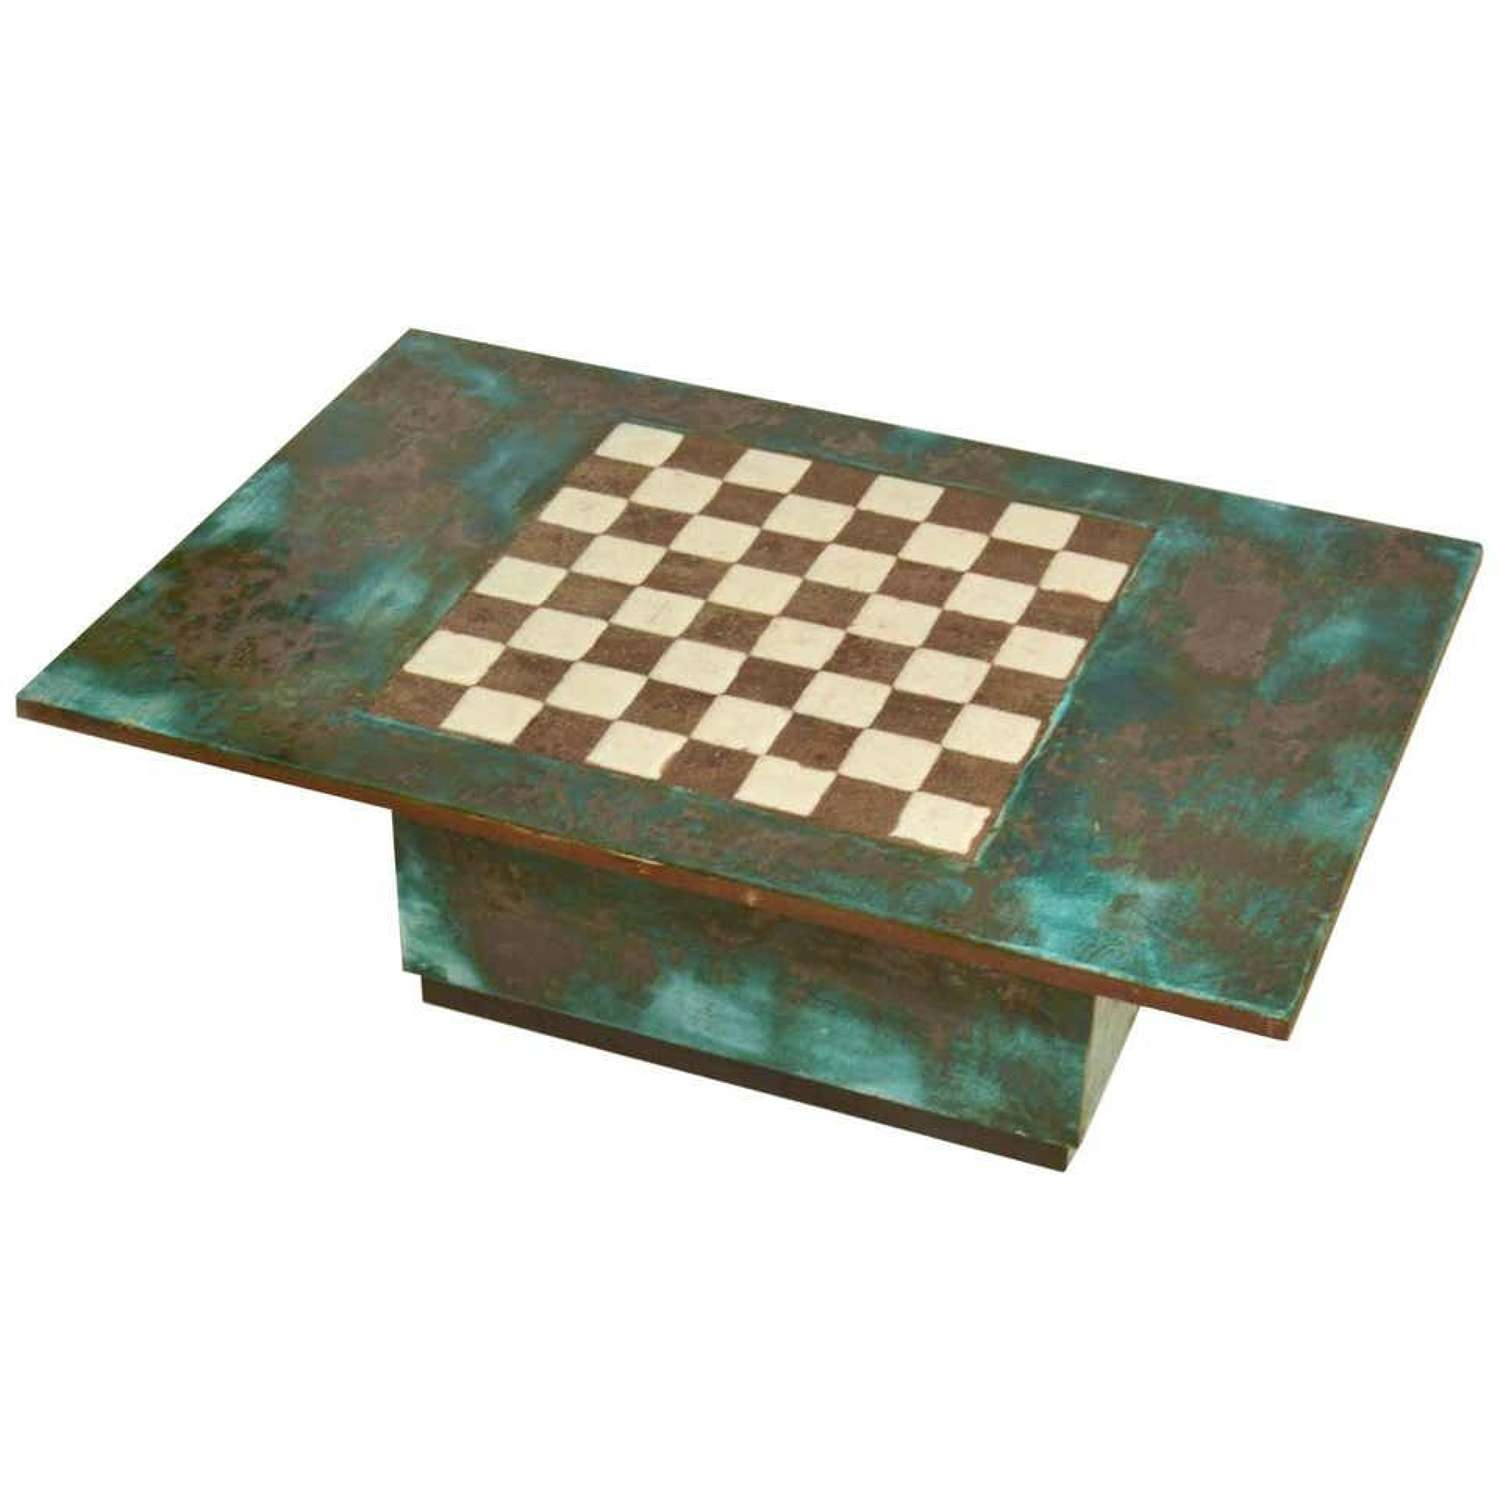 Game Table with Chessboard Hand Sculpted in Ceramic